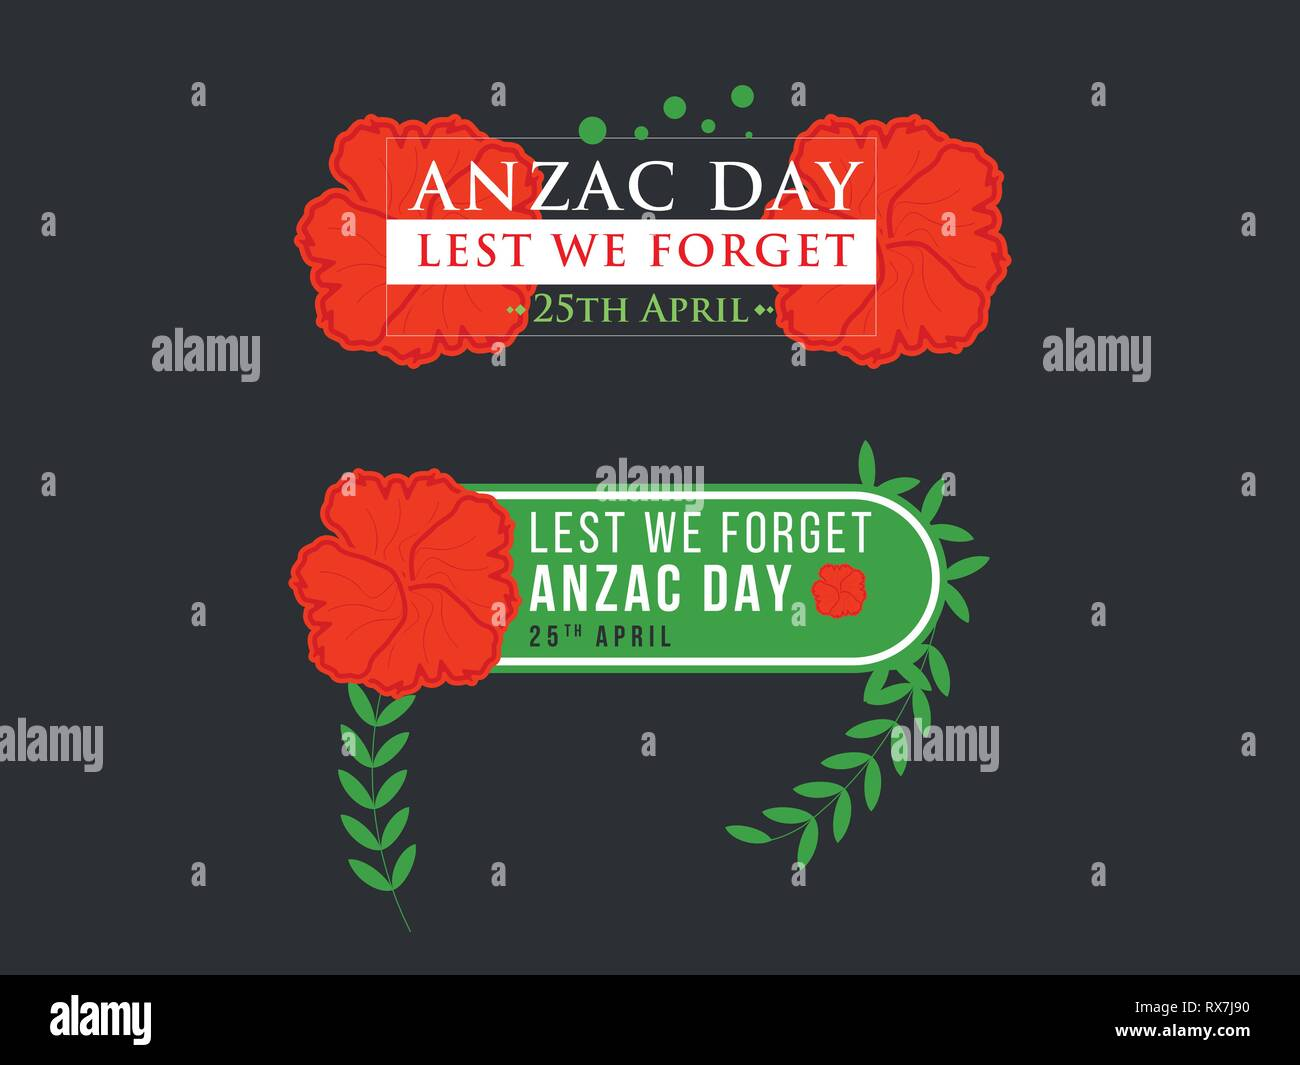 Anzac Day Illustration with nice red poppy flower background - Stock Vector